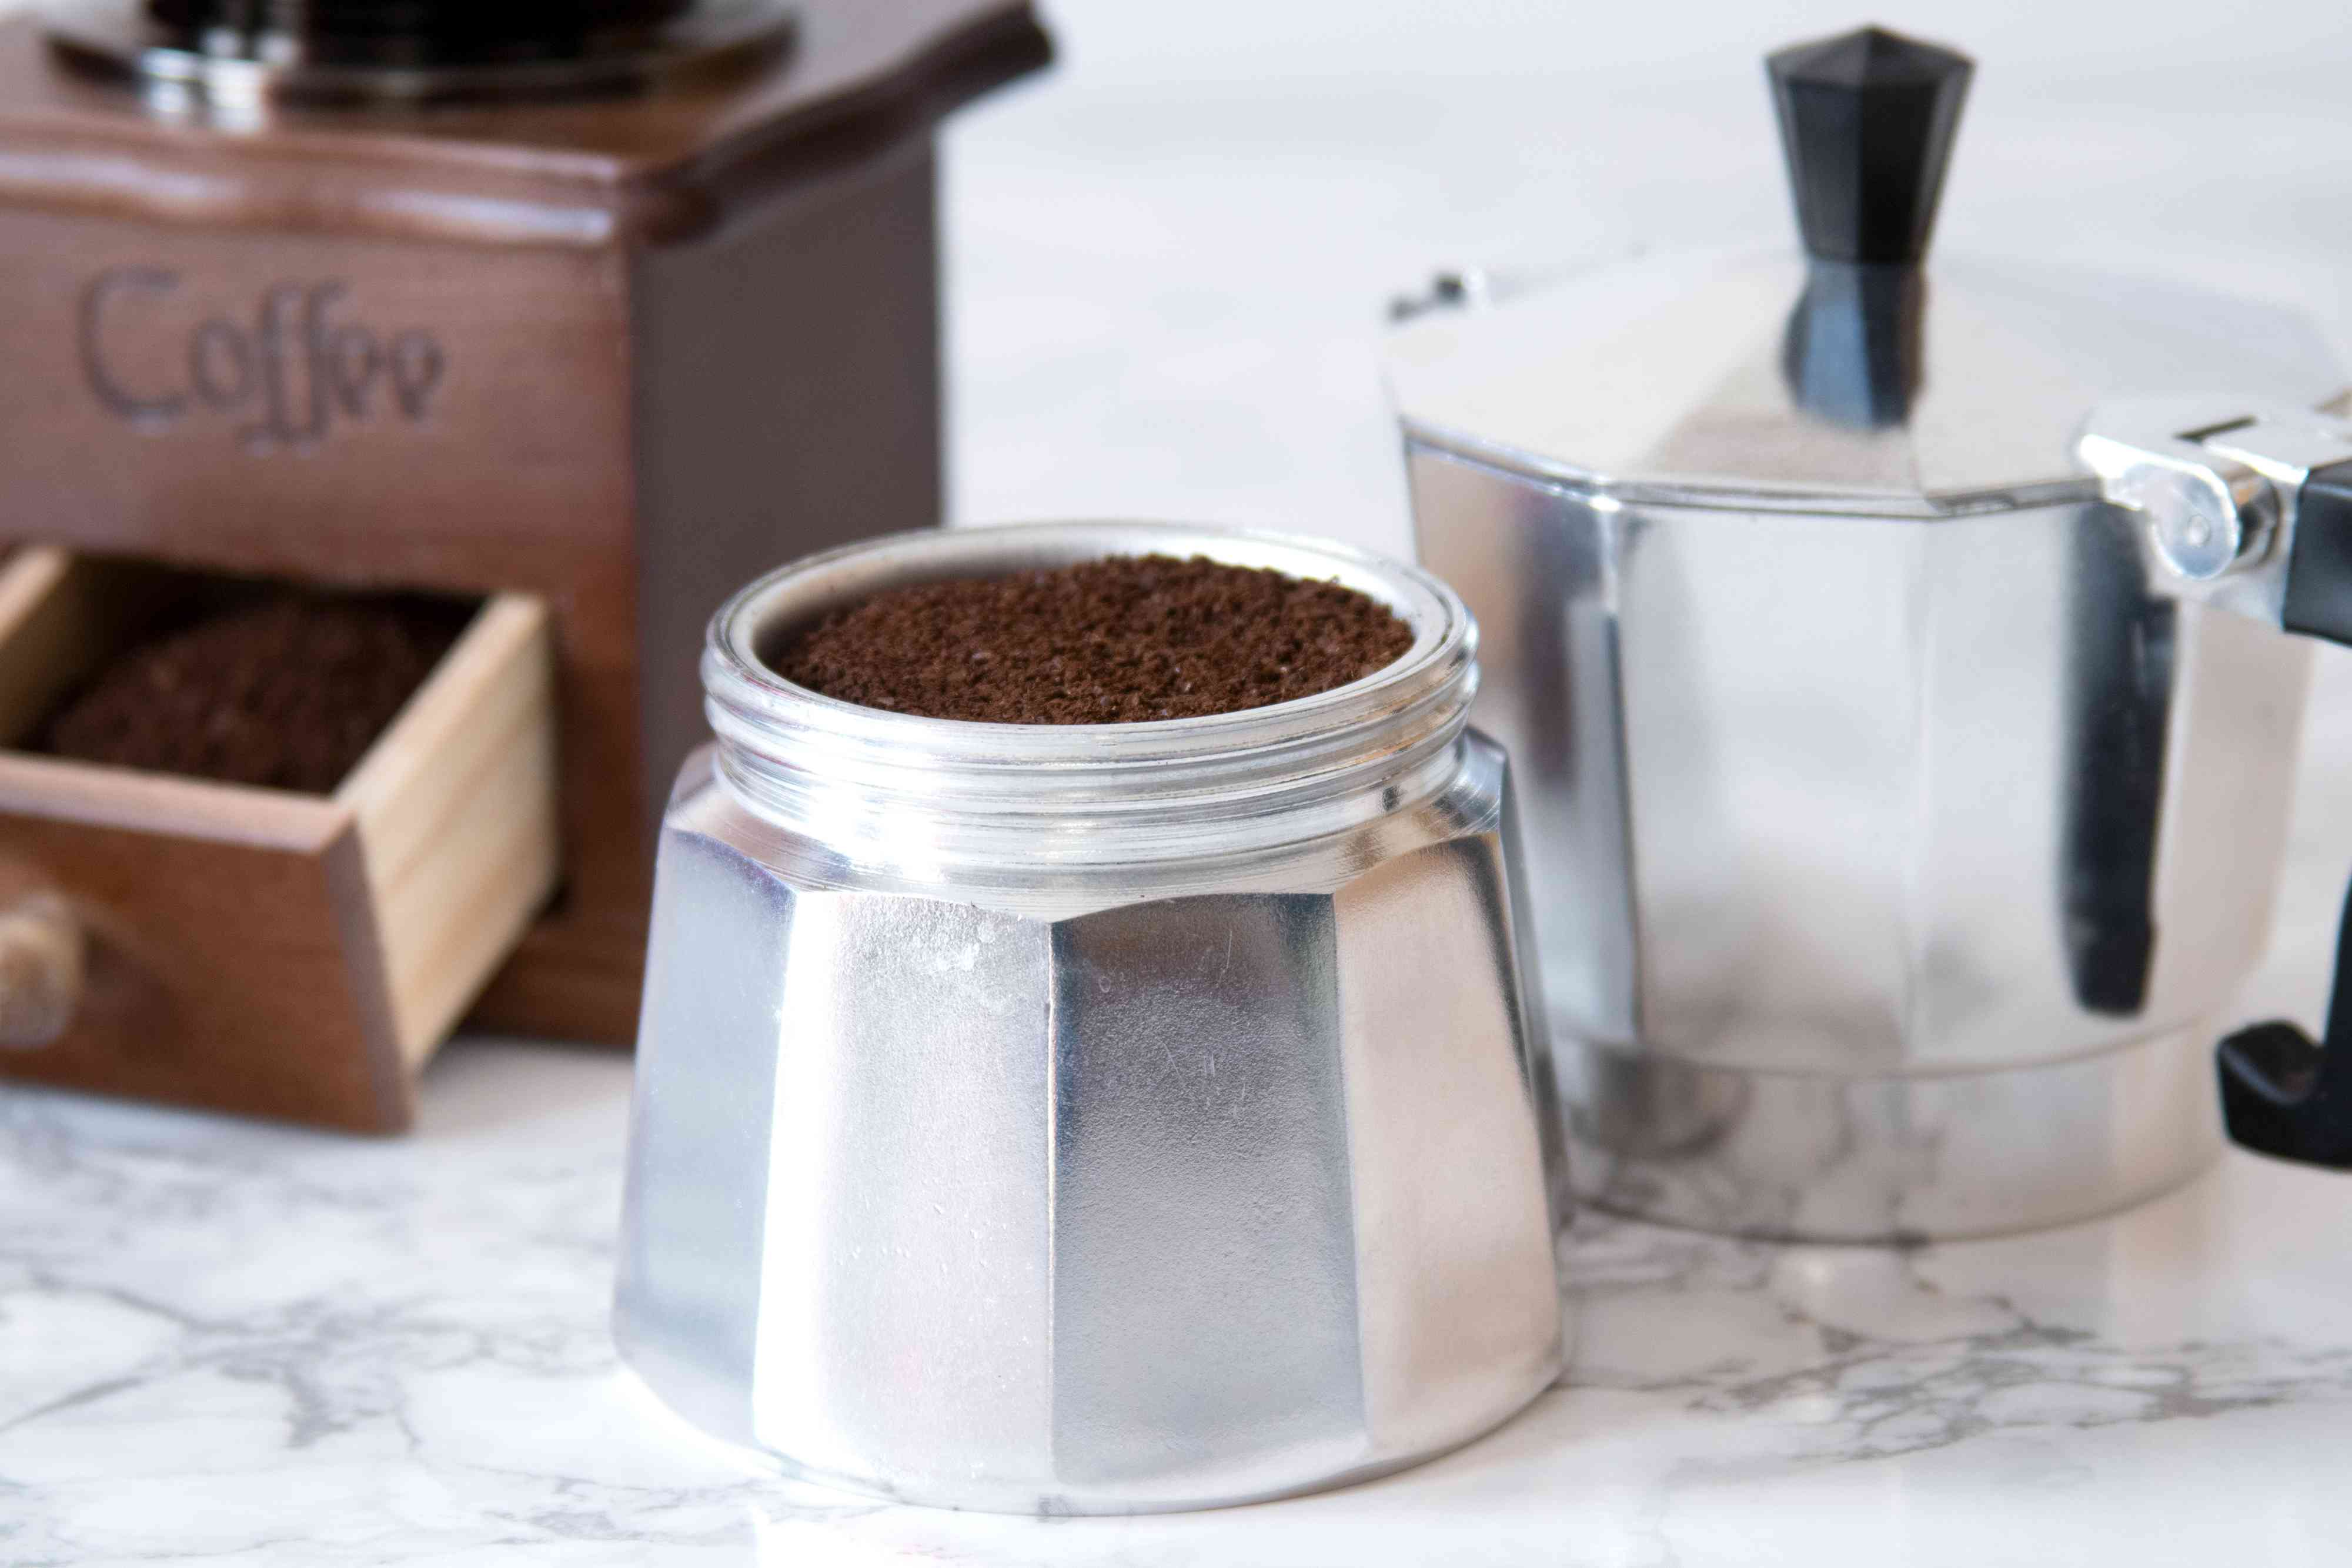 Filling Moka Pot With Finely Ground Coffee